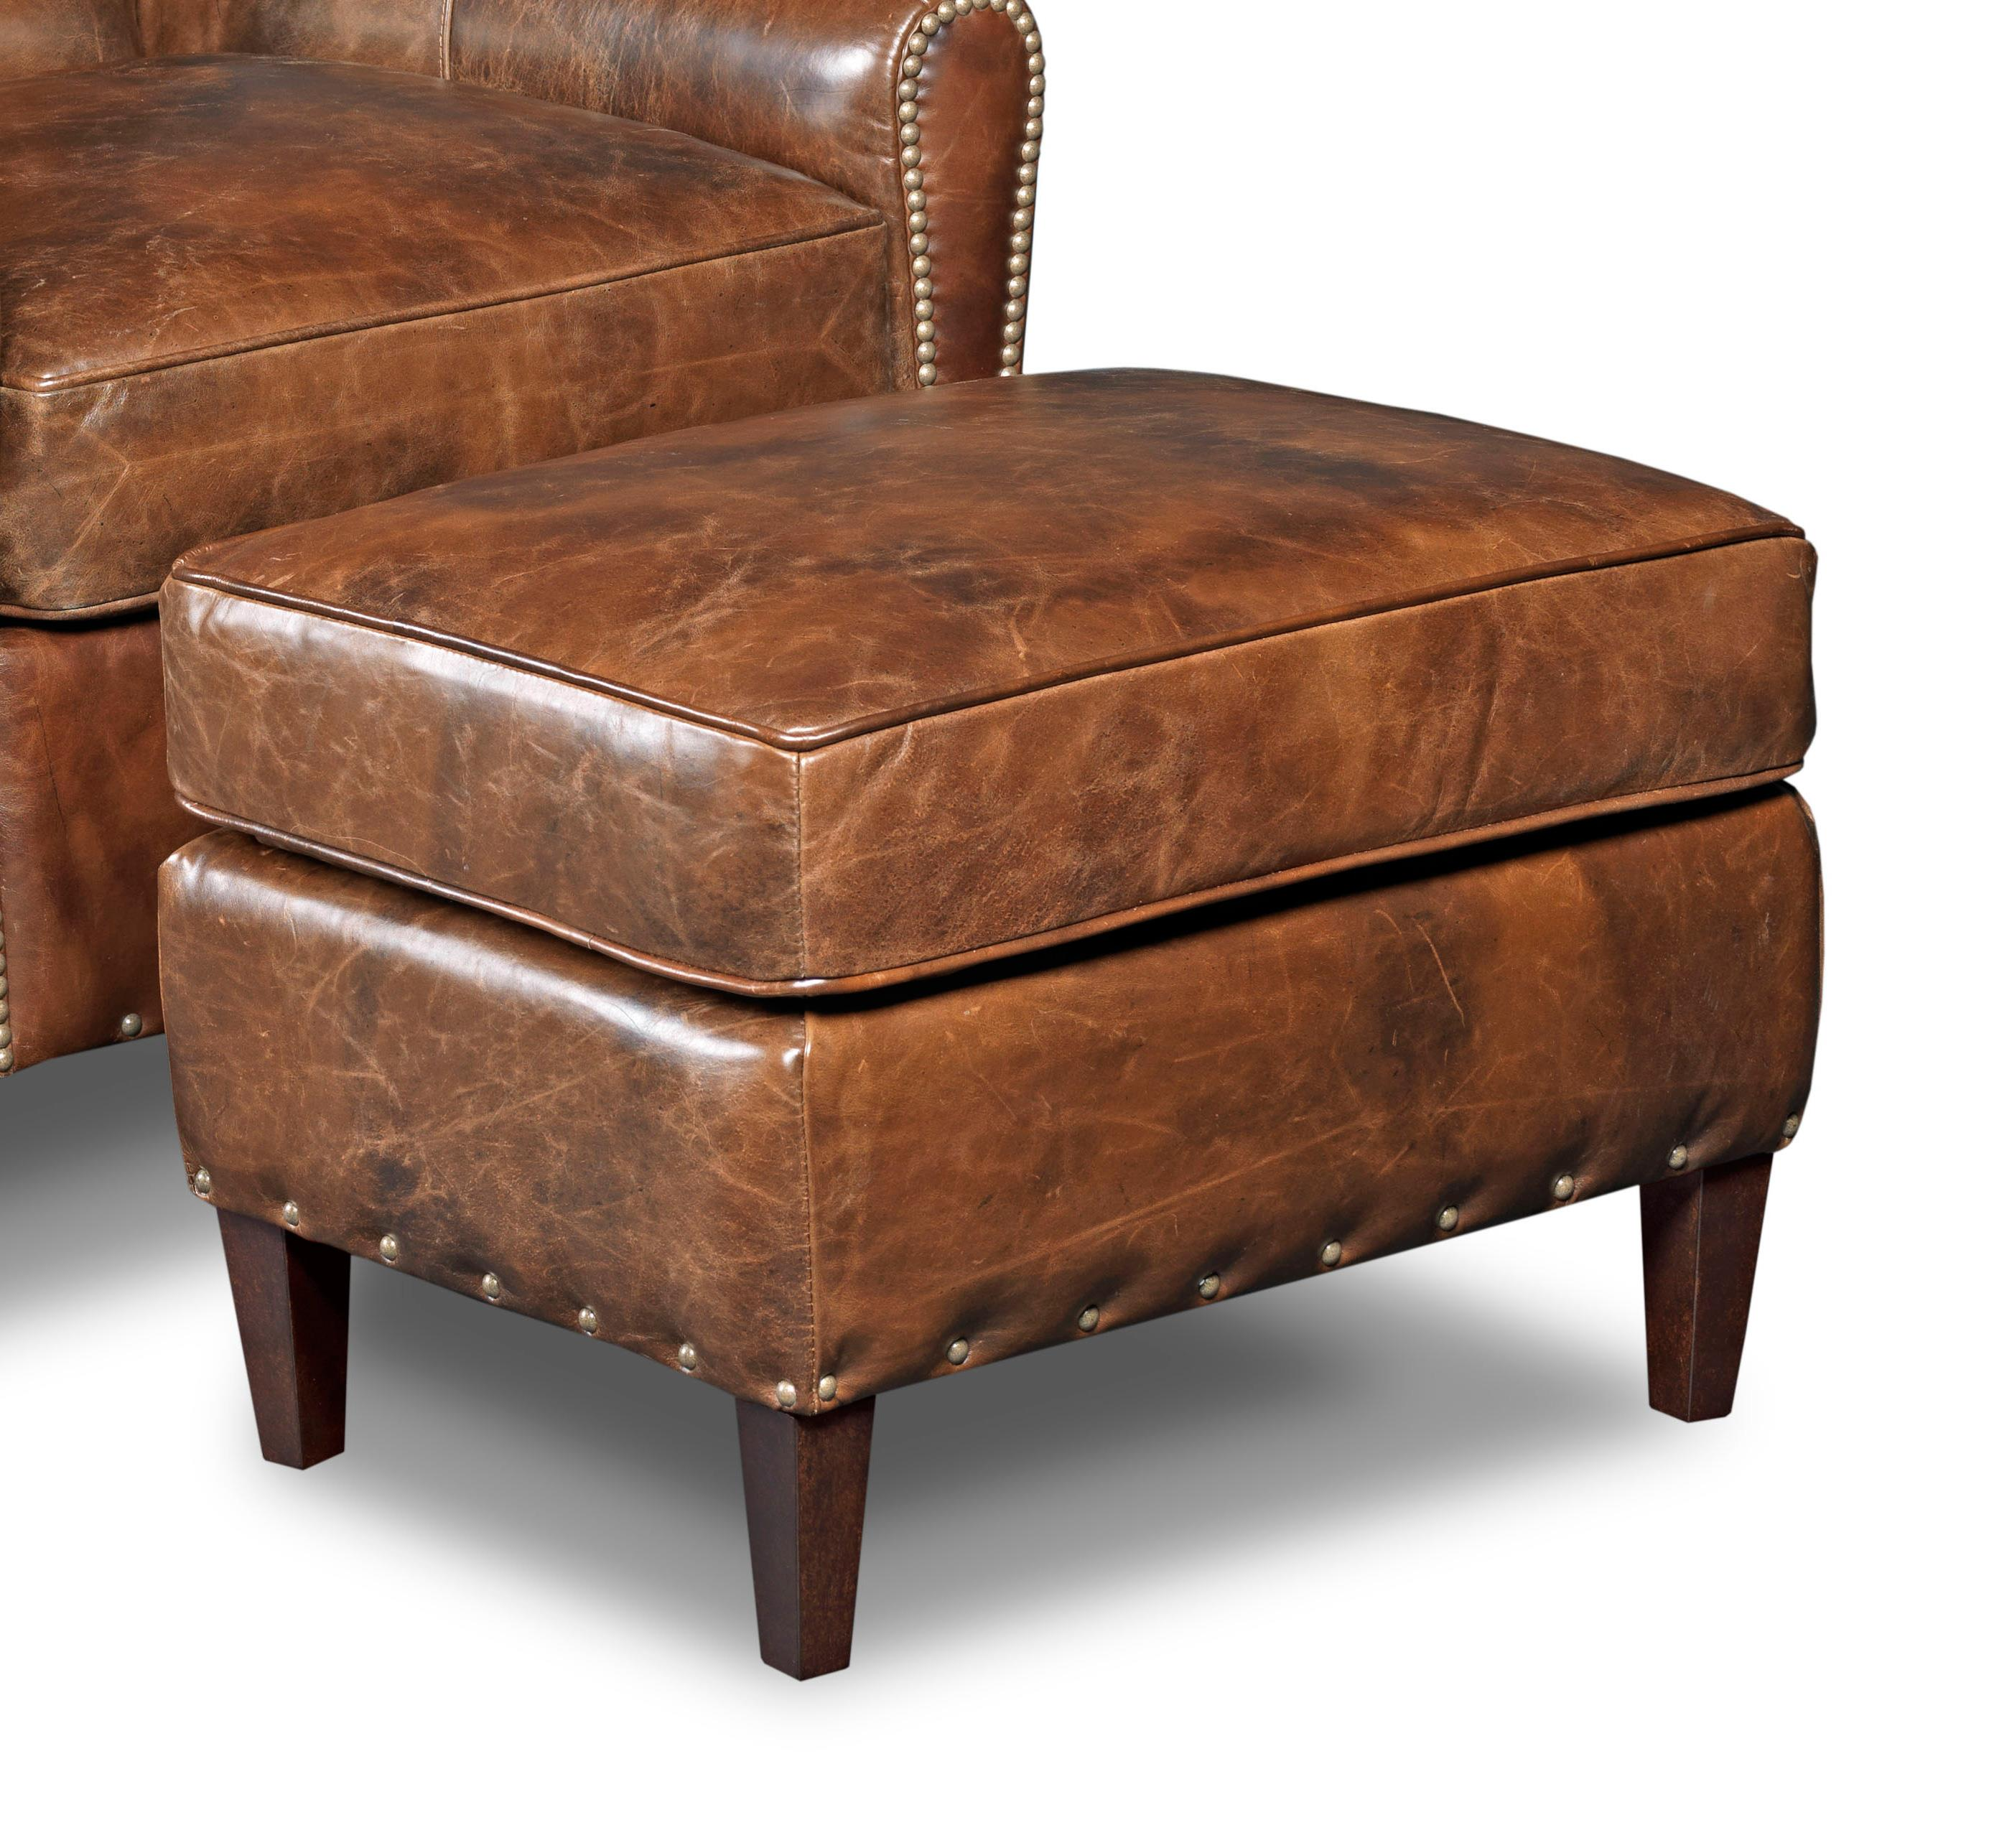 Chairs With Ottoman Club Chairs Transitional Ottoman With Nailhead Studs By Hamilton Home At Rotmans